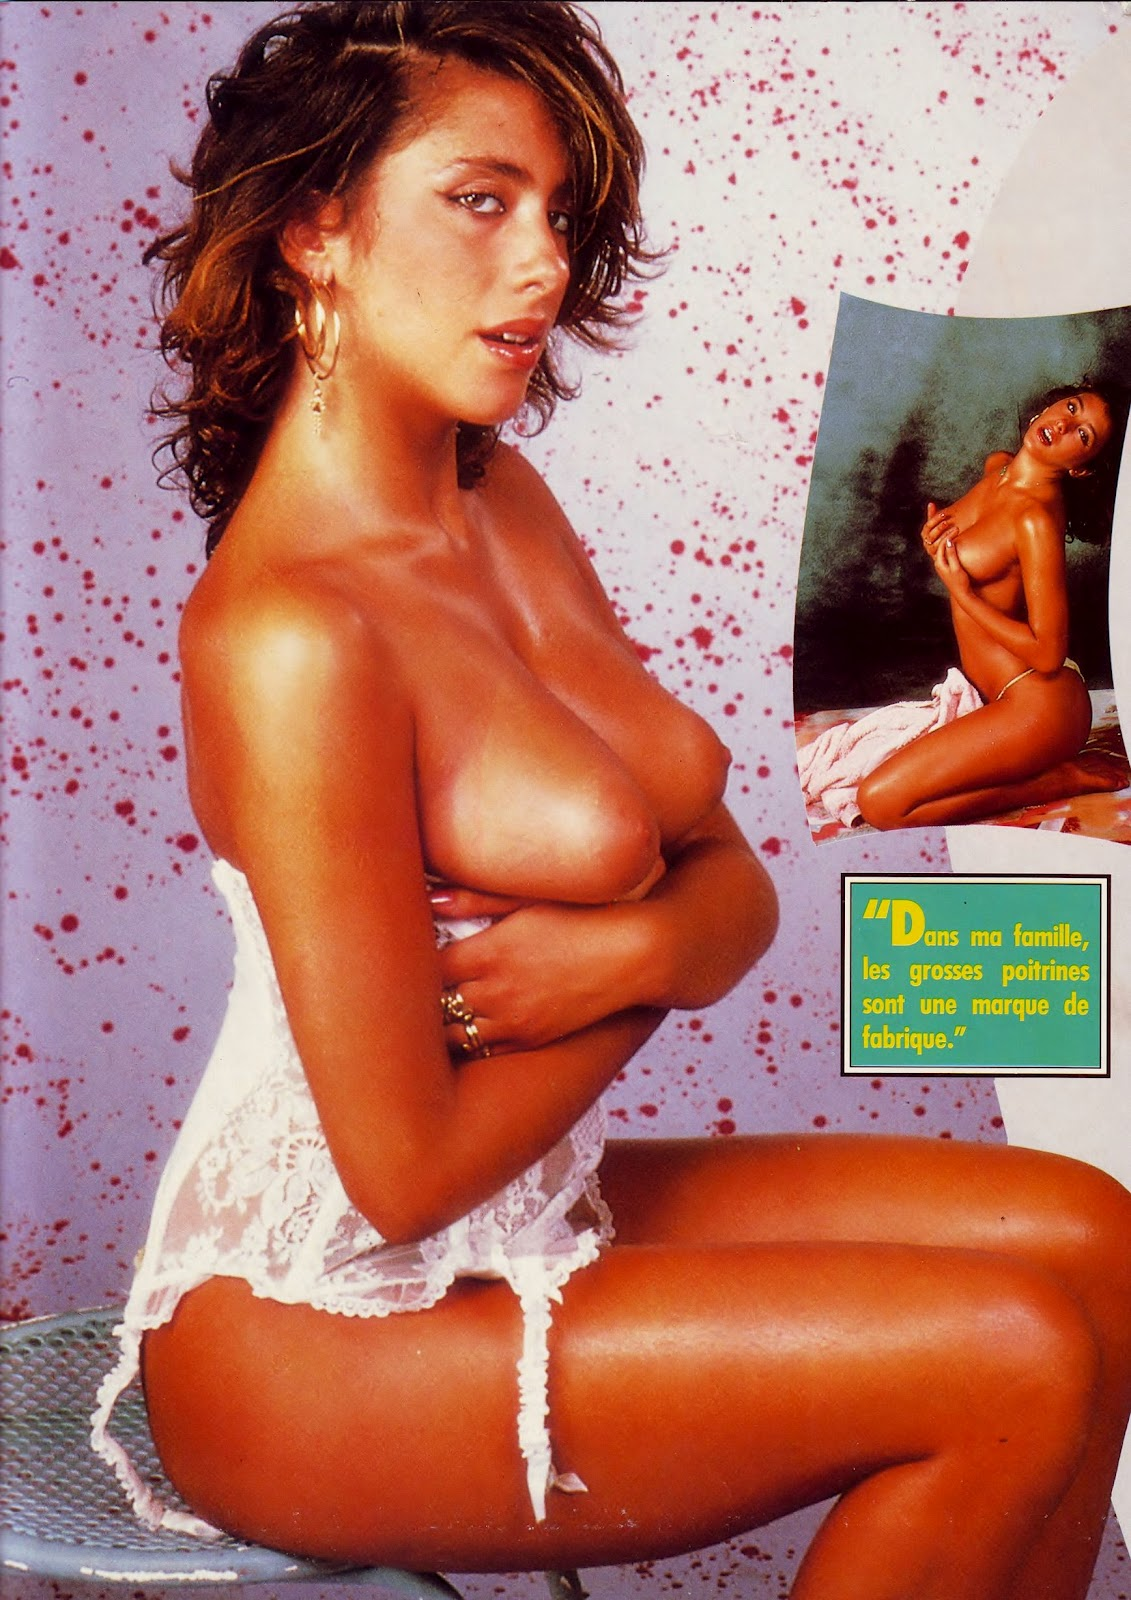 Soleil Moon Frye Nude, Fappening, Sexy Photos, Uncensored